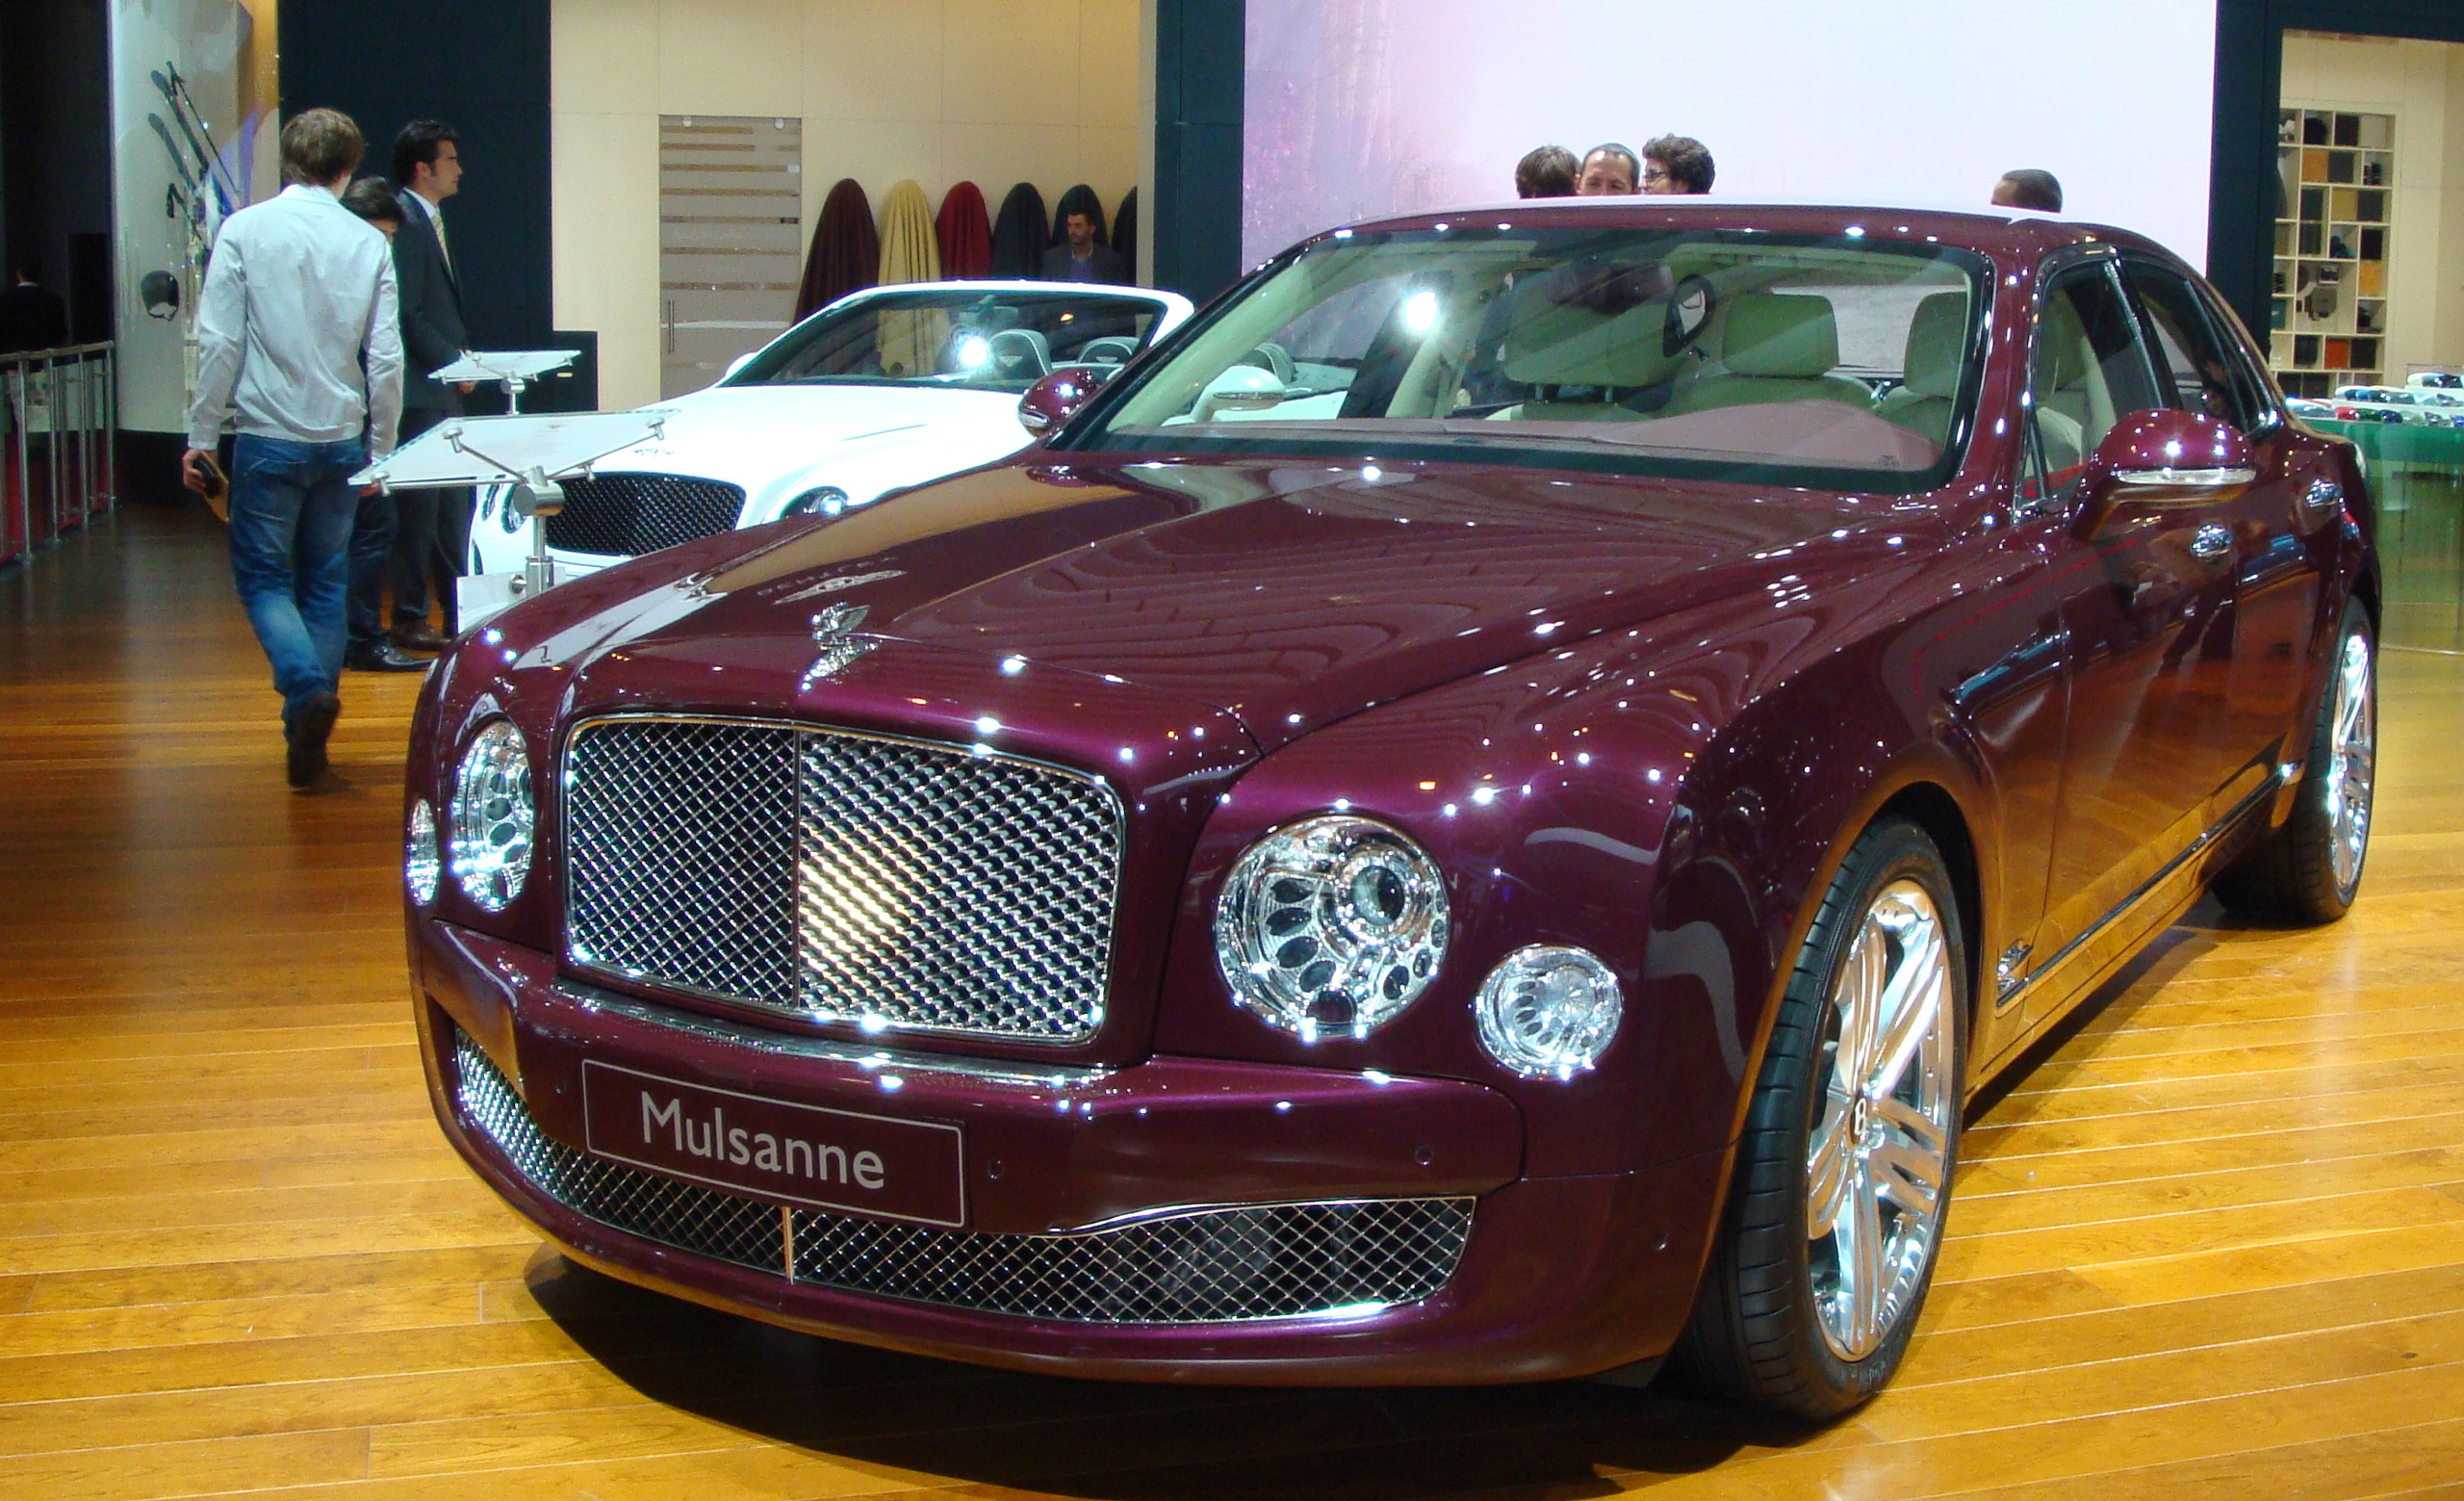 FileBentley Mulsanne 2010JPG  Wikimedia Commons